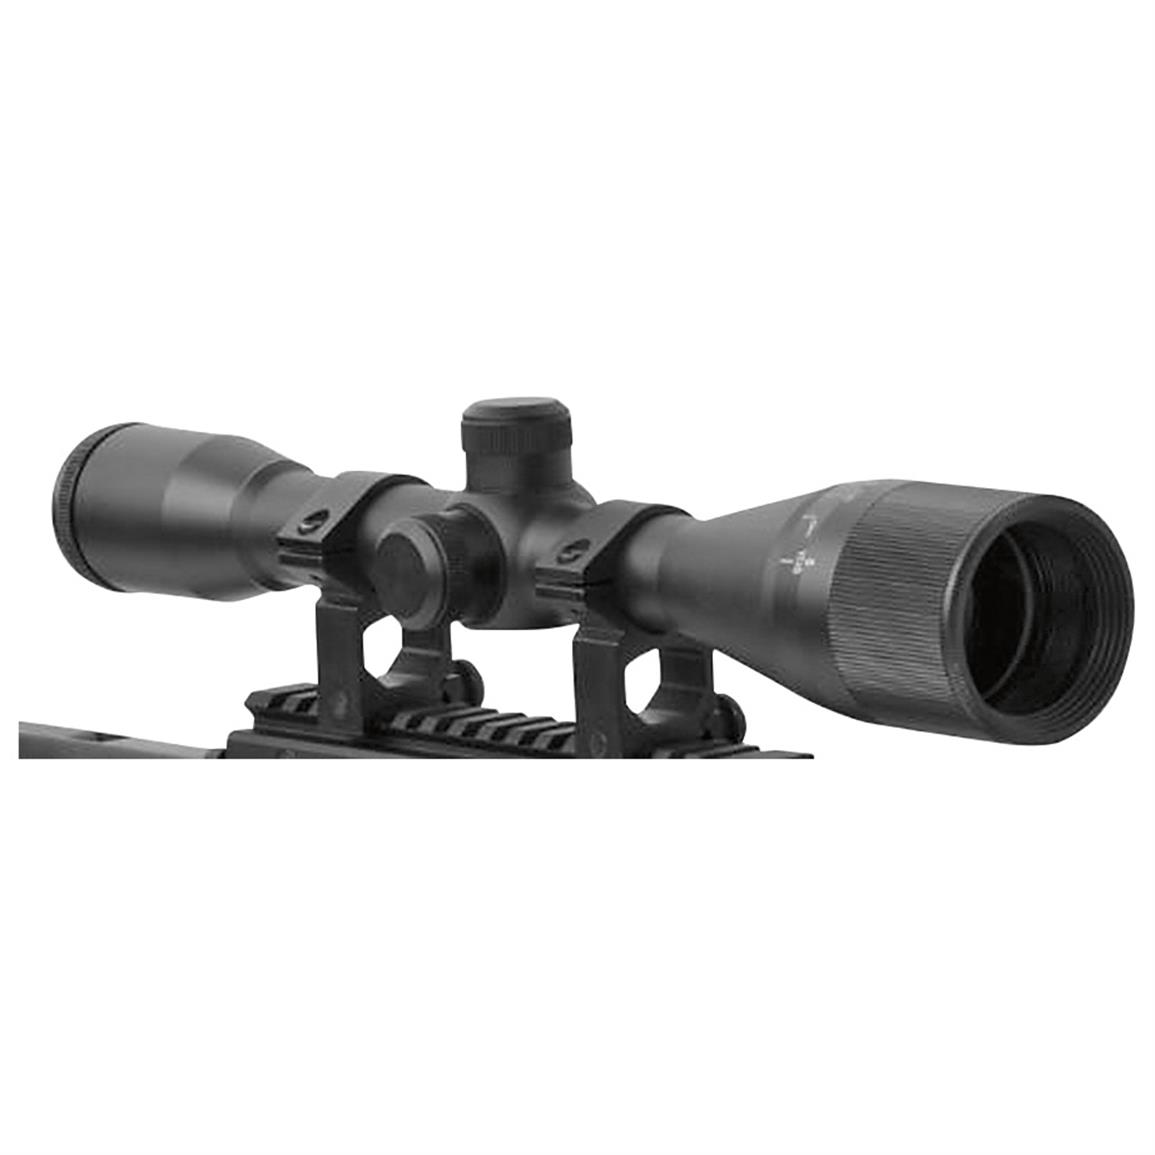 Includes 6x40mm Scope